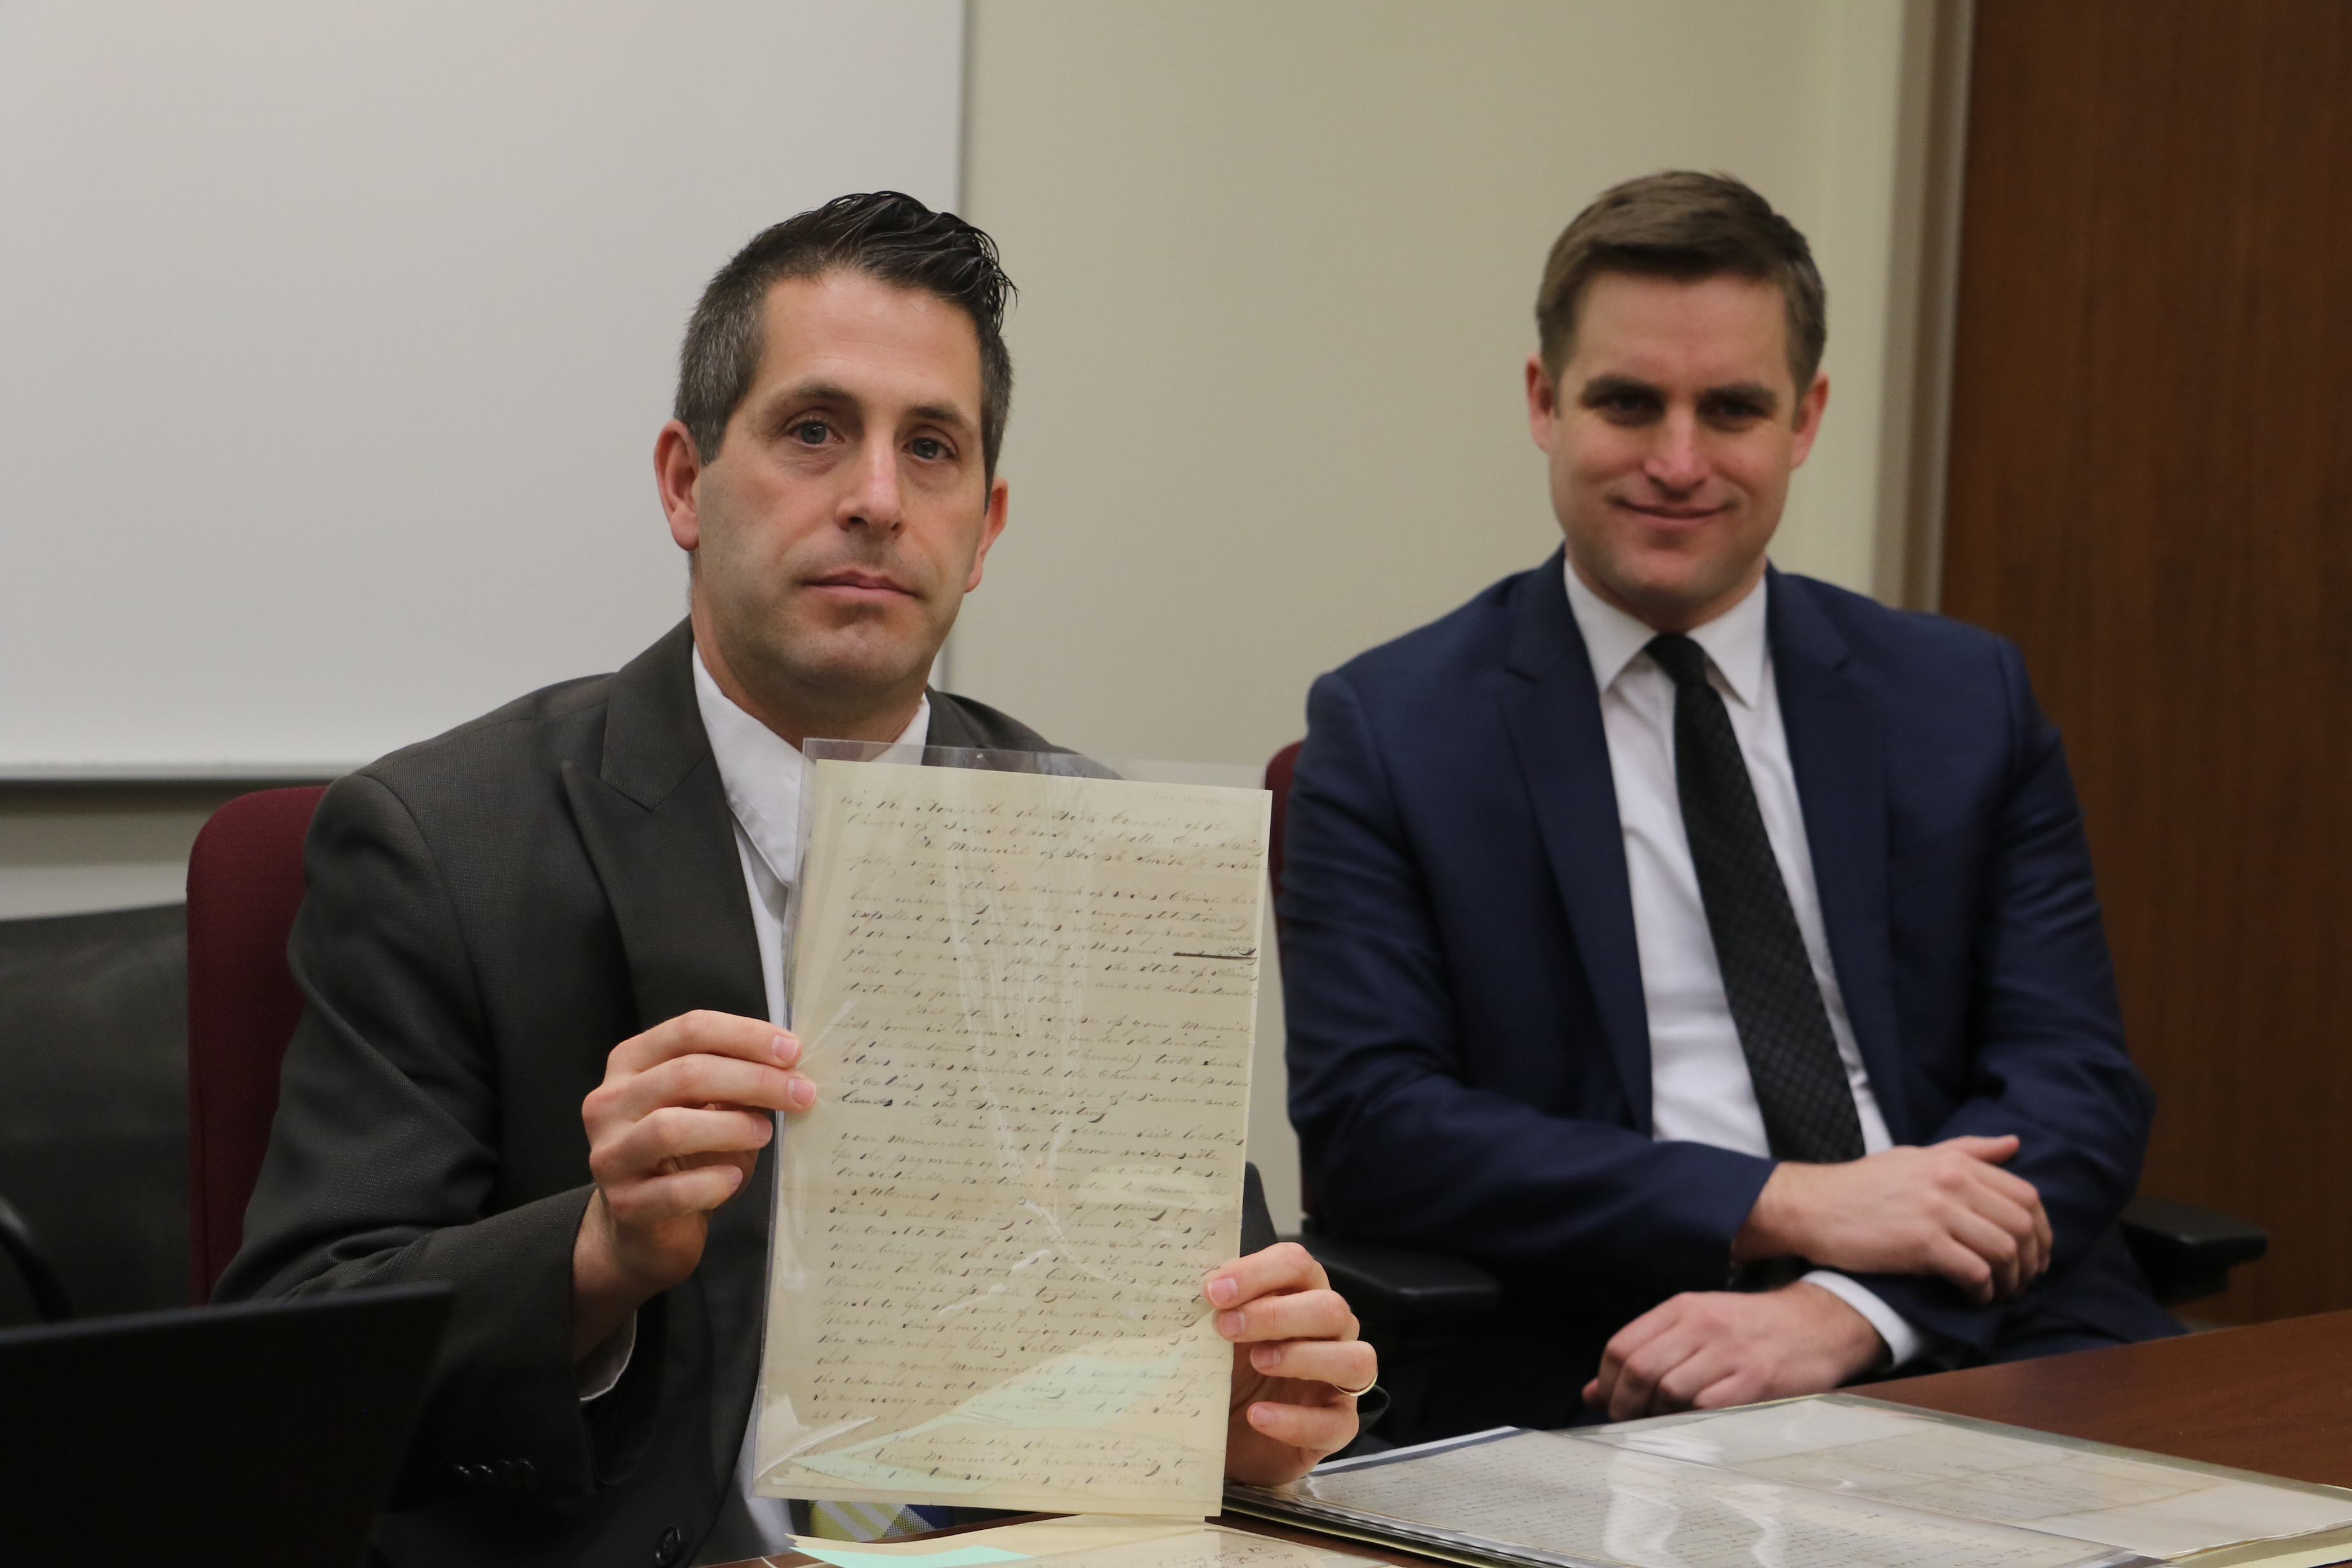 Matthew C. Godfrey, with fellow volume editor Spencer W. McBride in background, displays petition from Joseph Smith to the high council in Nauvoo. It is one of 129 documents contained in latest Joseph Smith Papers release.